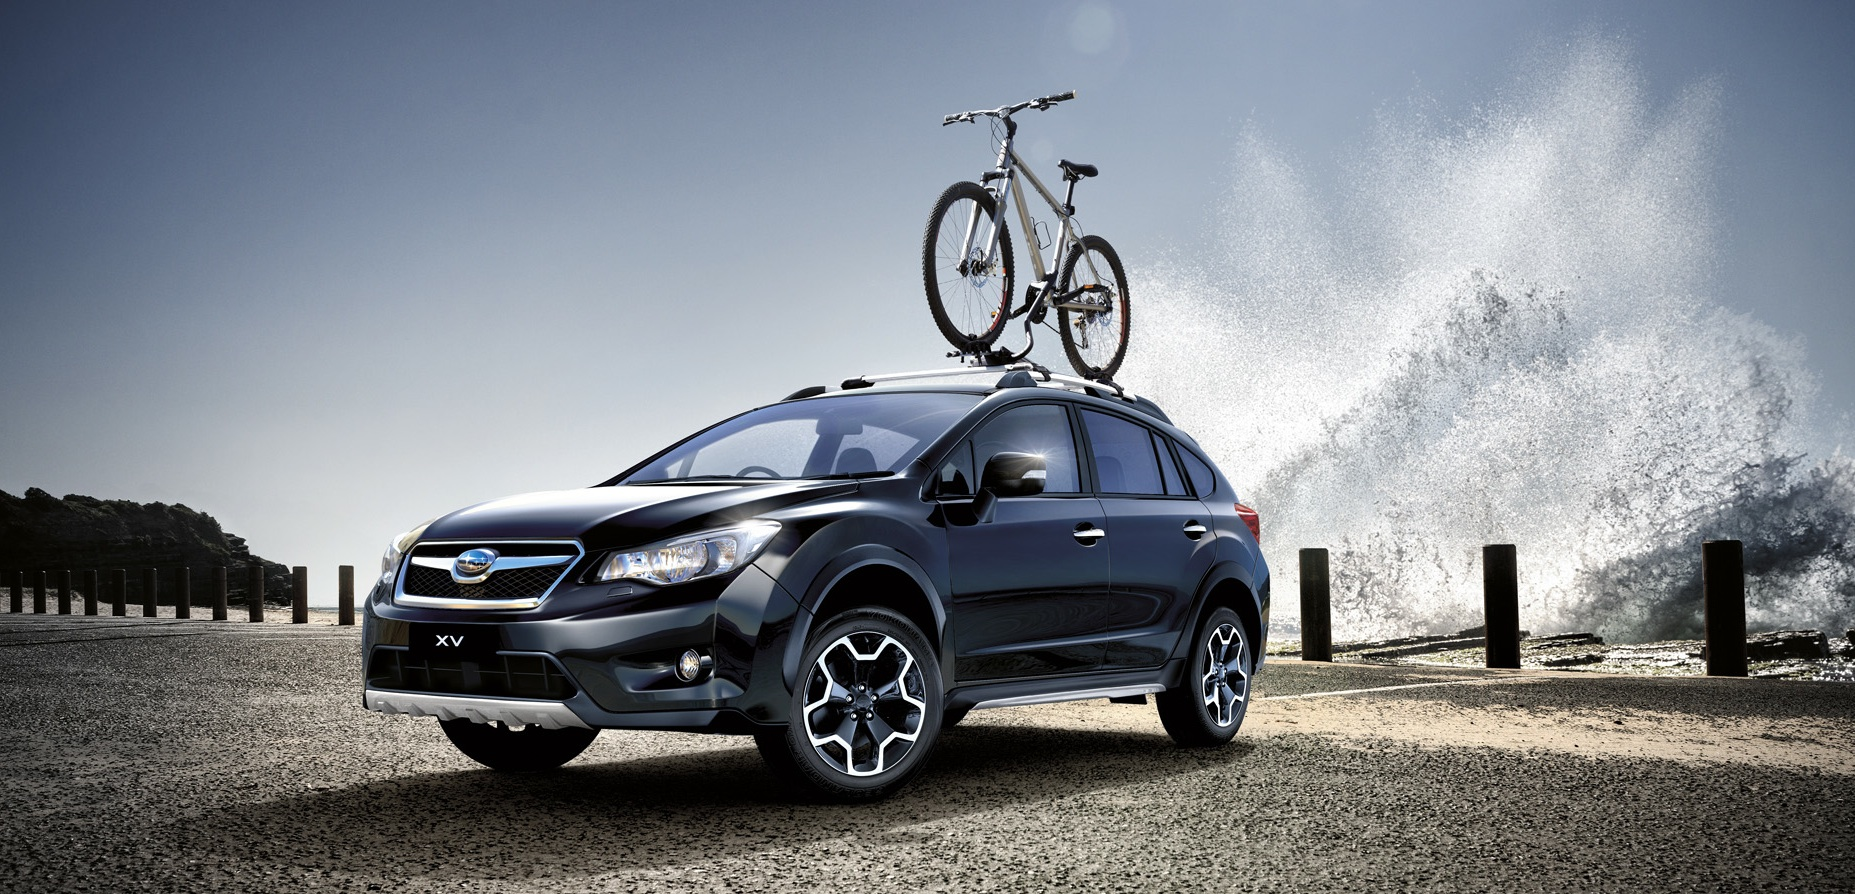 Subaru Xv Black Limited Edition Expands Local Suv Line Up